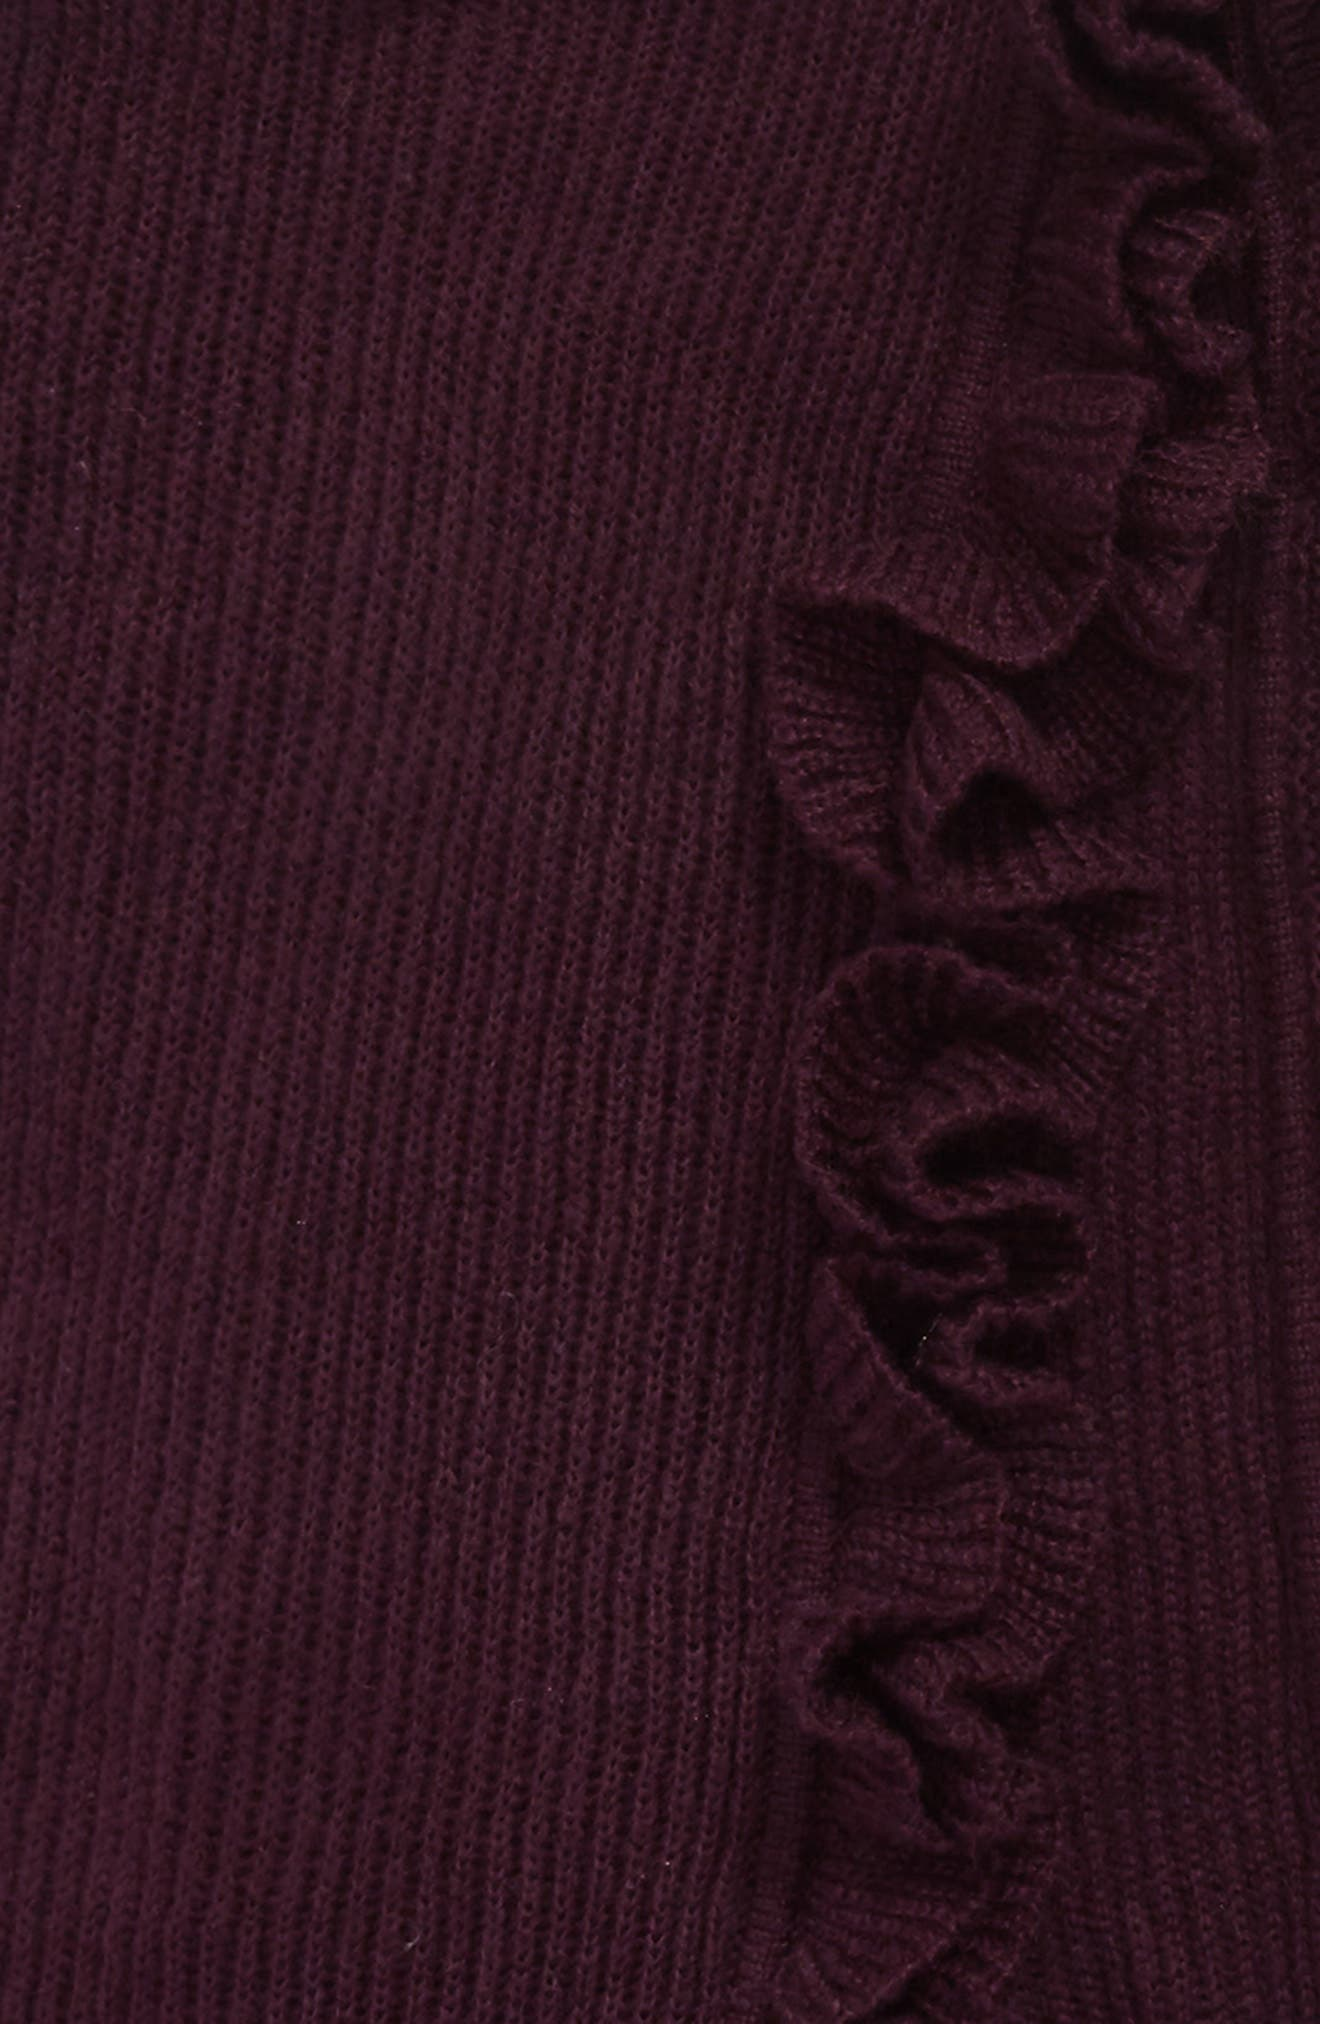 Ruffle Muffler,                             Alternate thumbnail 4, color,                             Deep Eggplant